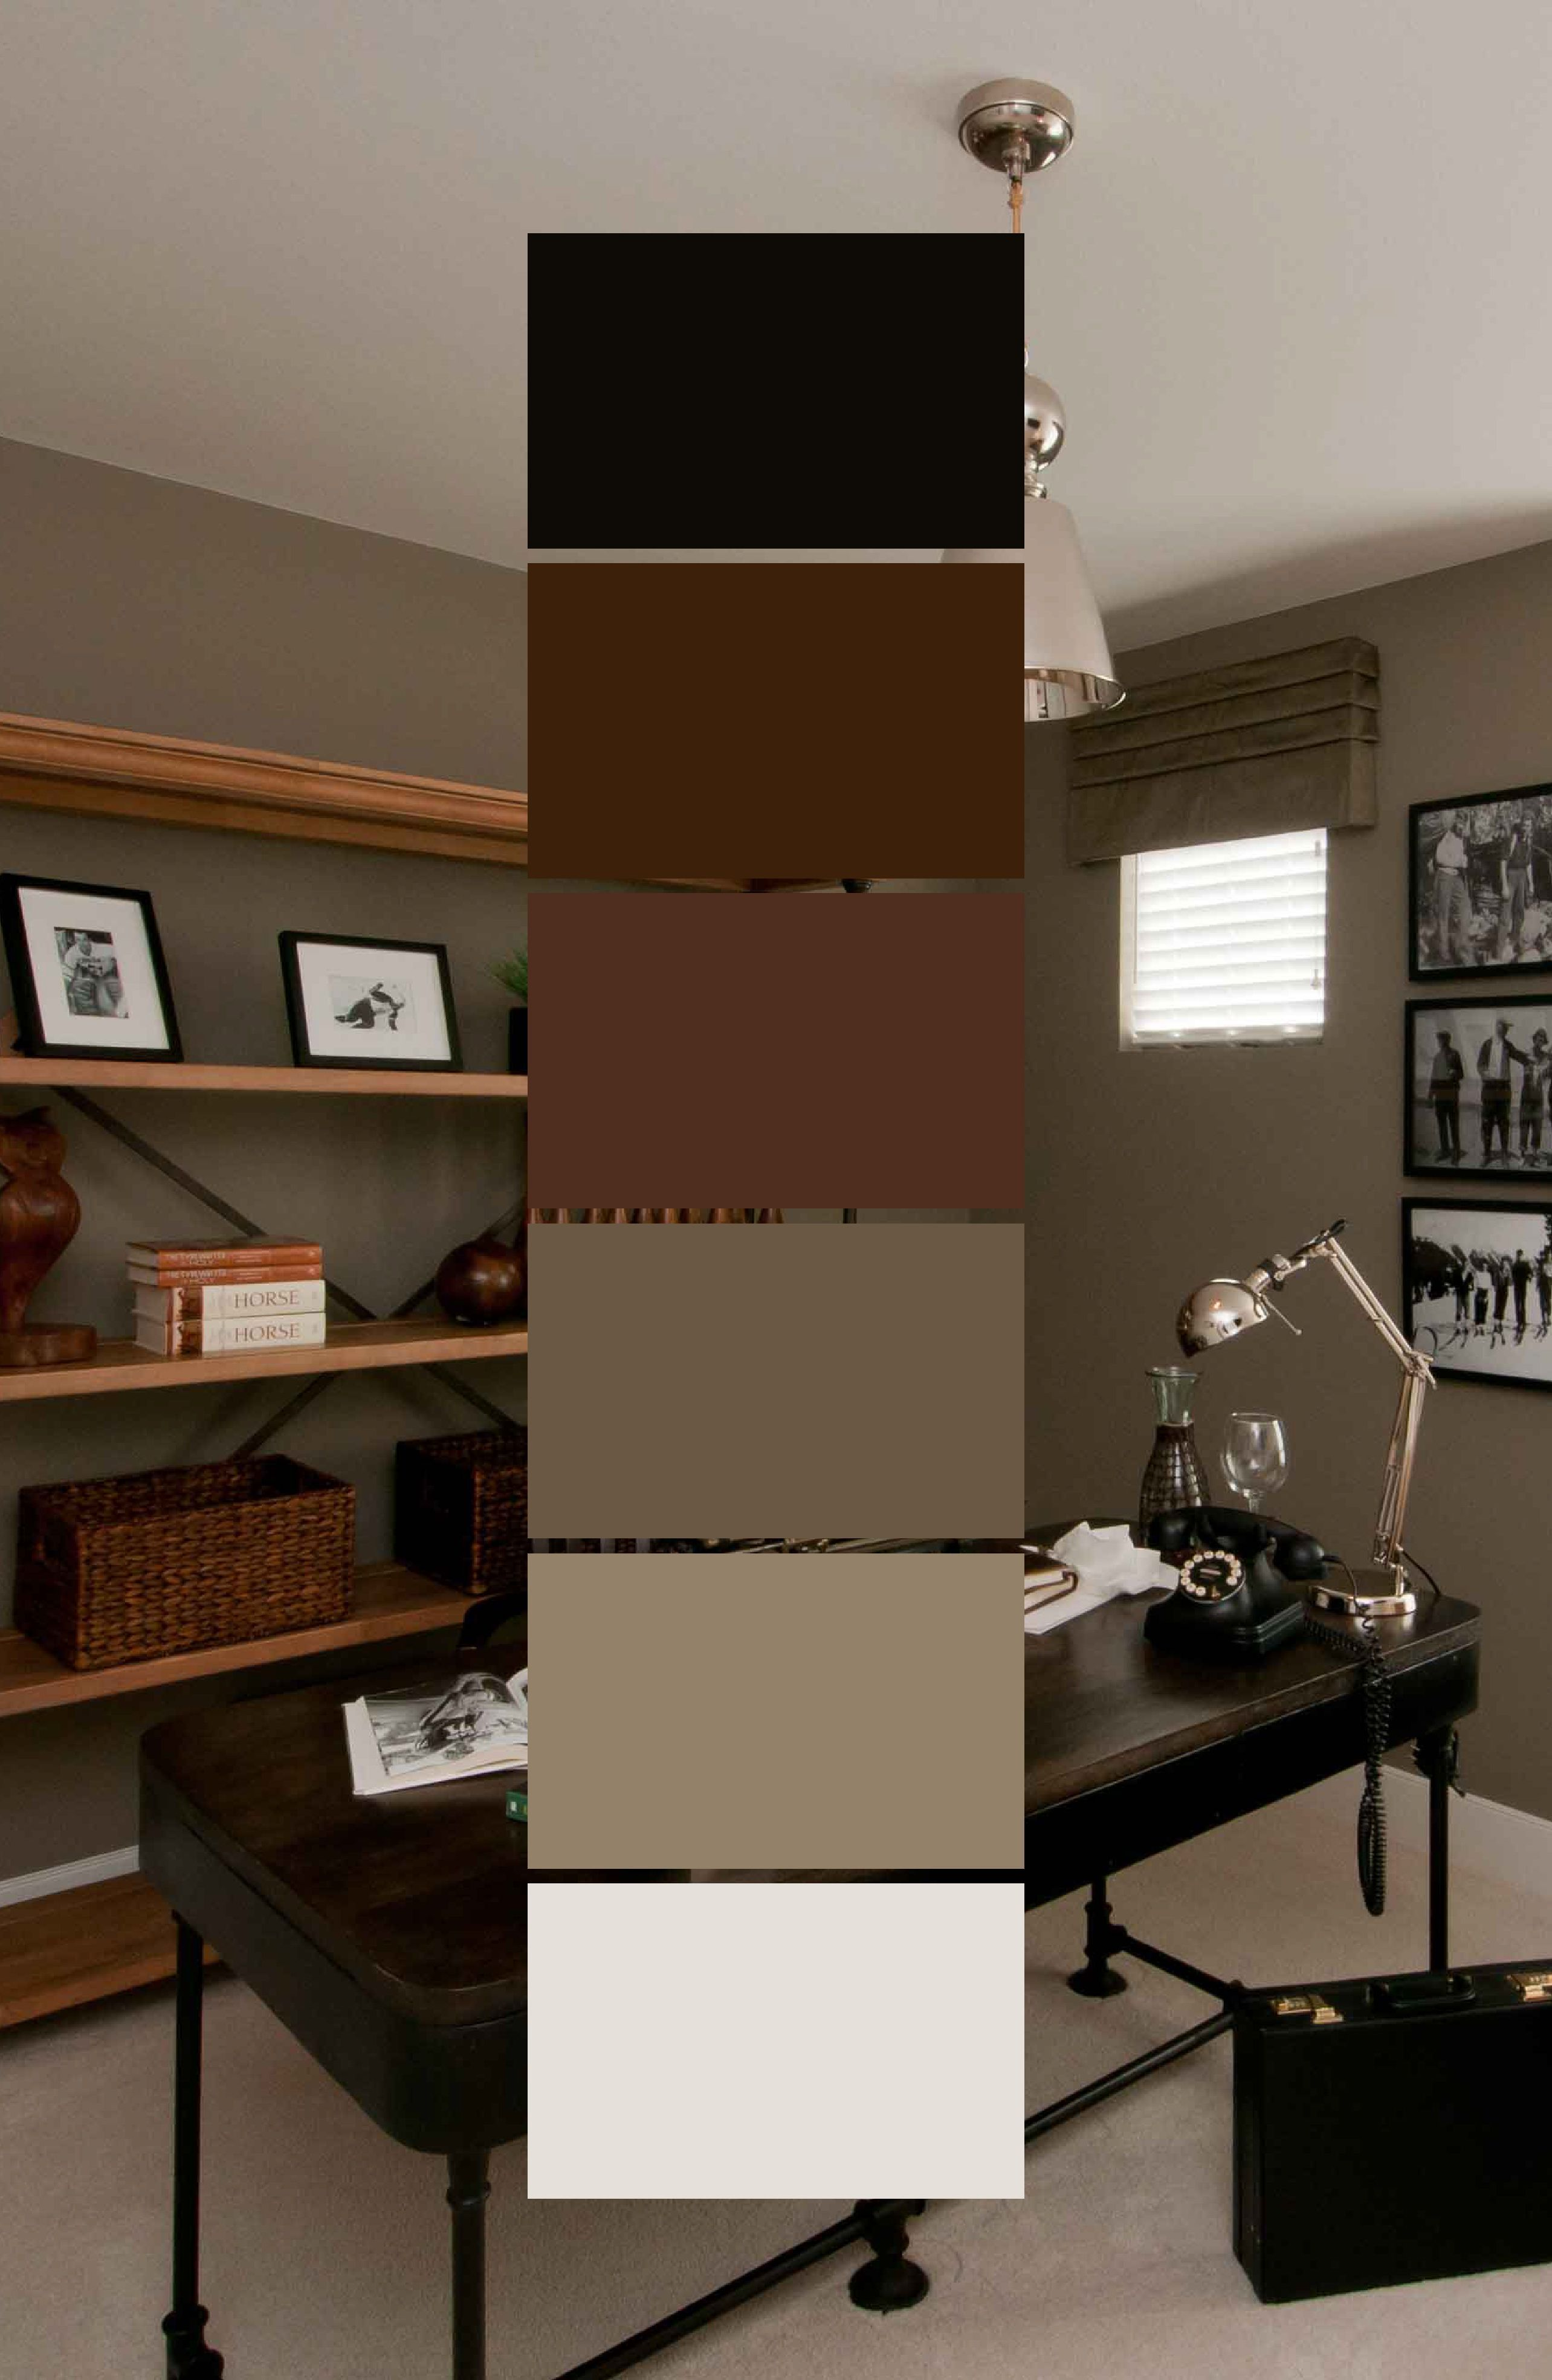 Even An Office Deserves Some Colour Palette Thought This Office Goes For A Brown Wall Colour That Furniture Color Schemes Brown Living Room Decor Brown Walls